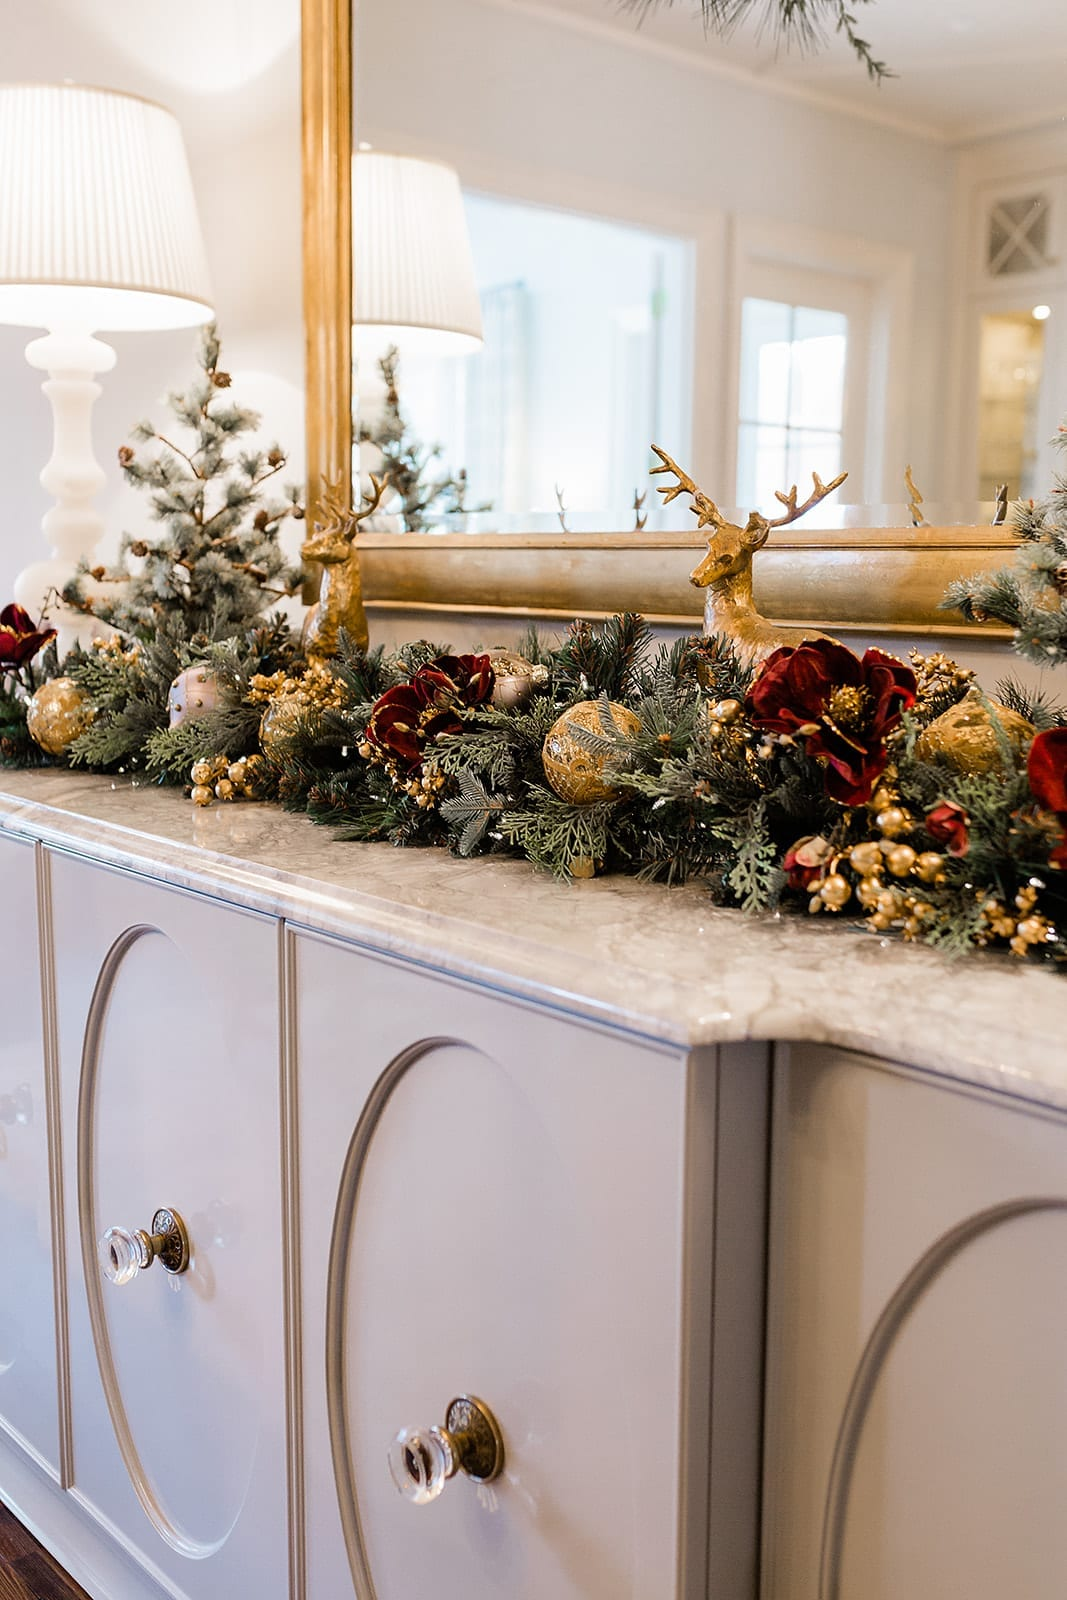 Gold reindeer decor for Christmas dining room buffet. Christmas tabletop idea with glamorous burgundy and gold holiday decor.